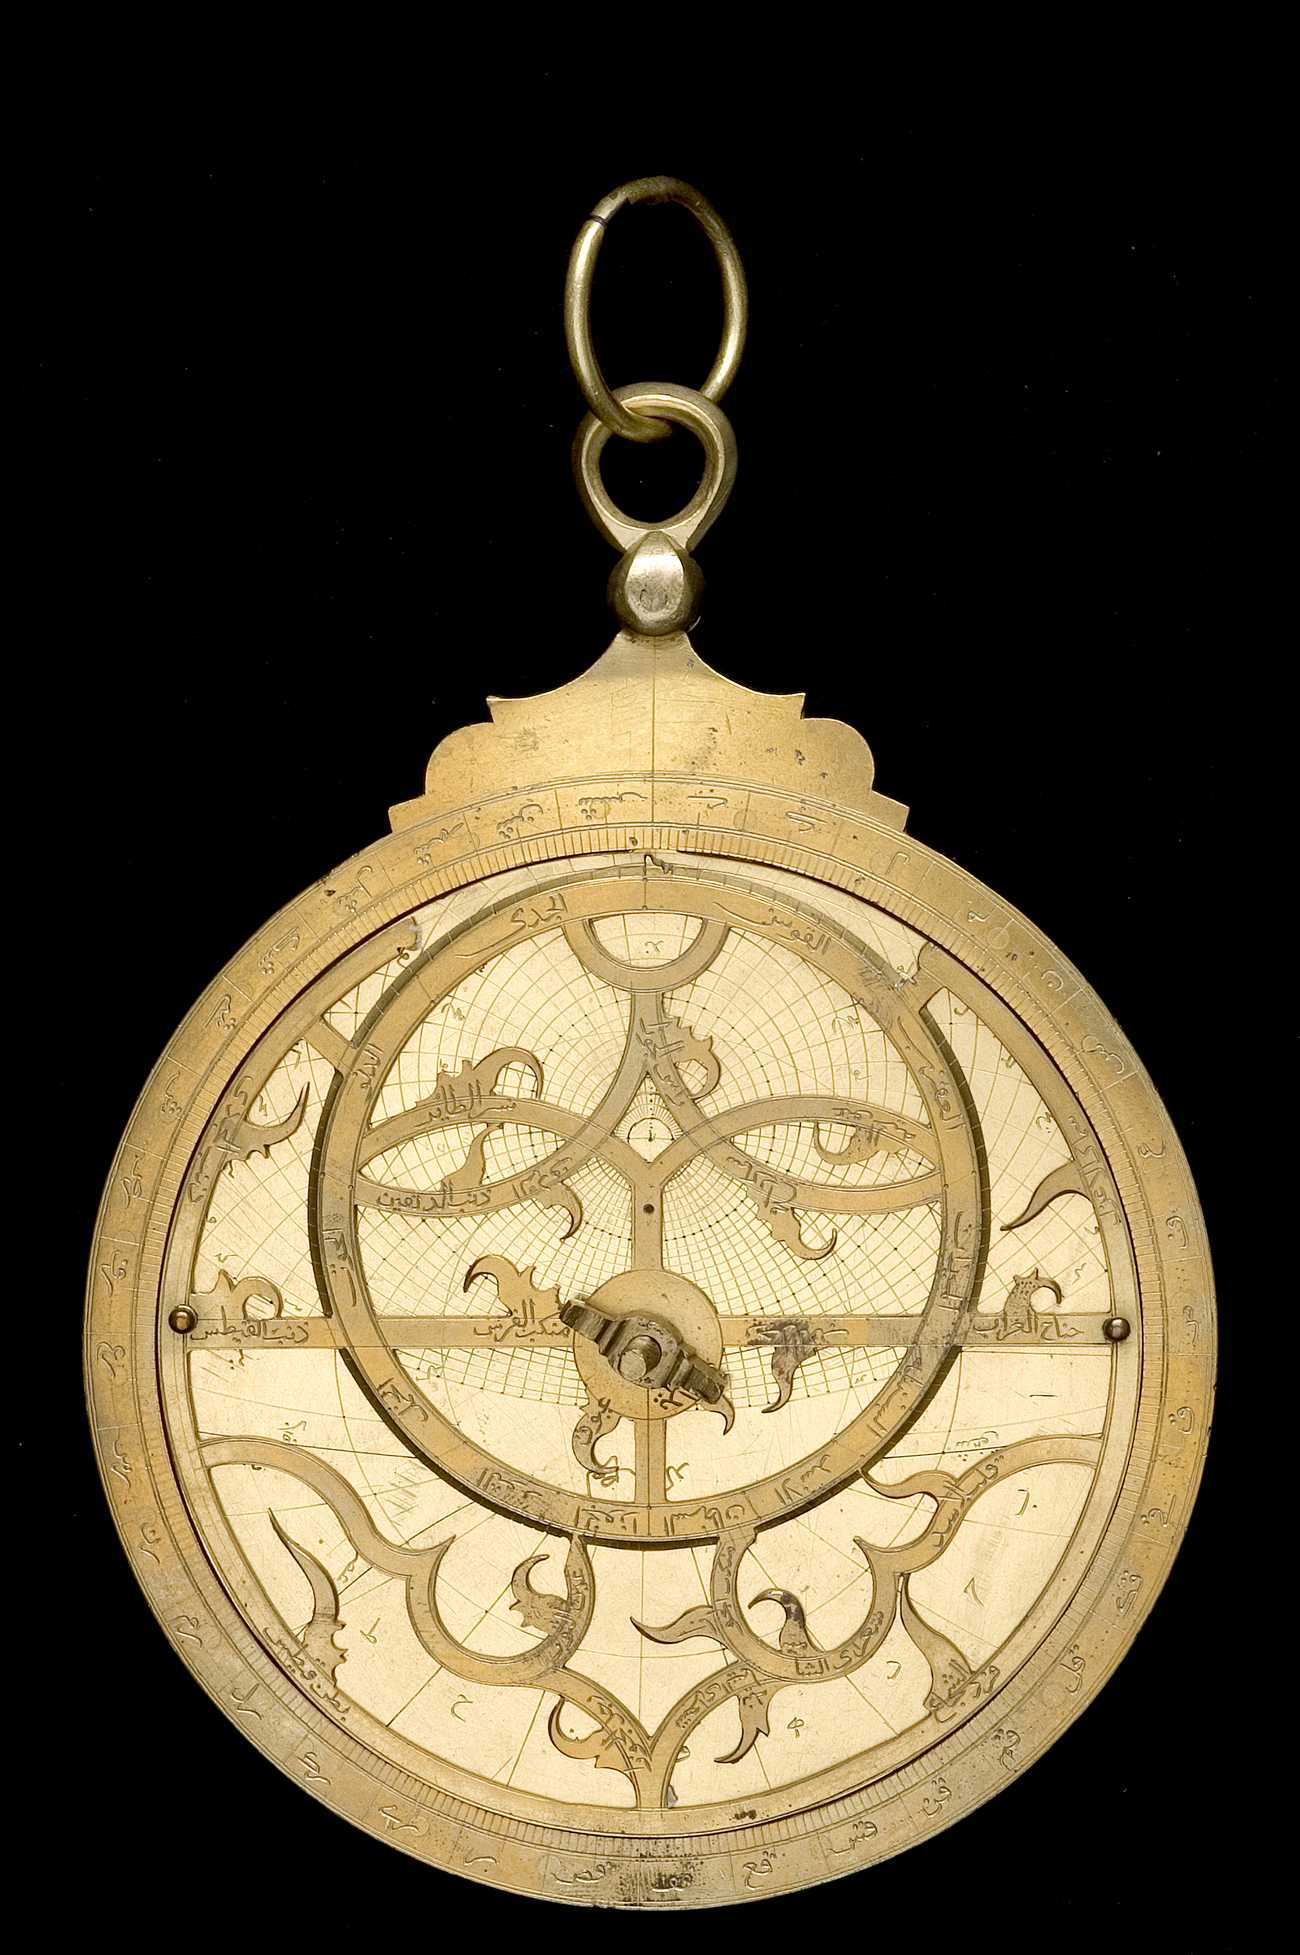 Astrolabe Image Report Inventory Number 52473: Astrolabe Report (inventory Number 39955